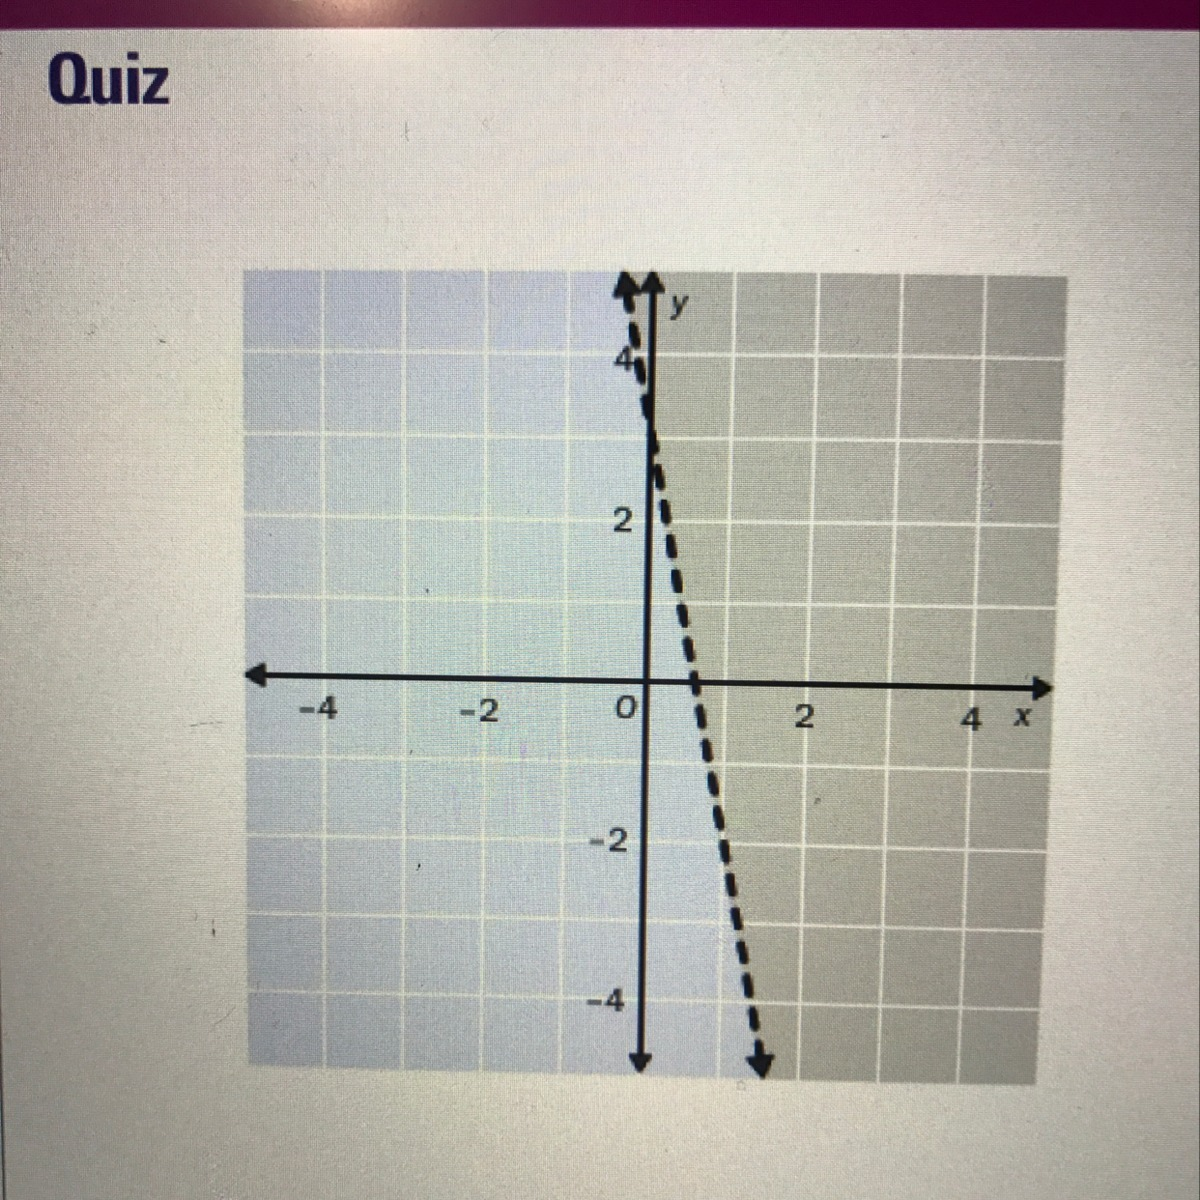 Choose The Linear Inequality That Describes The Graph The